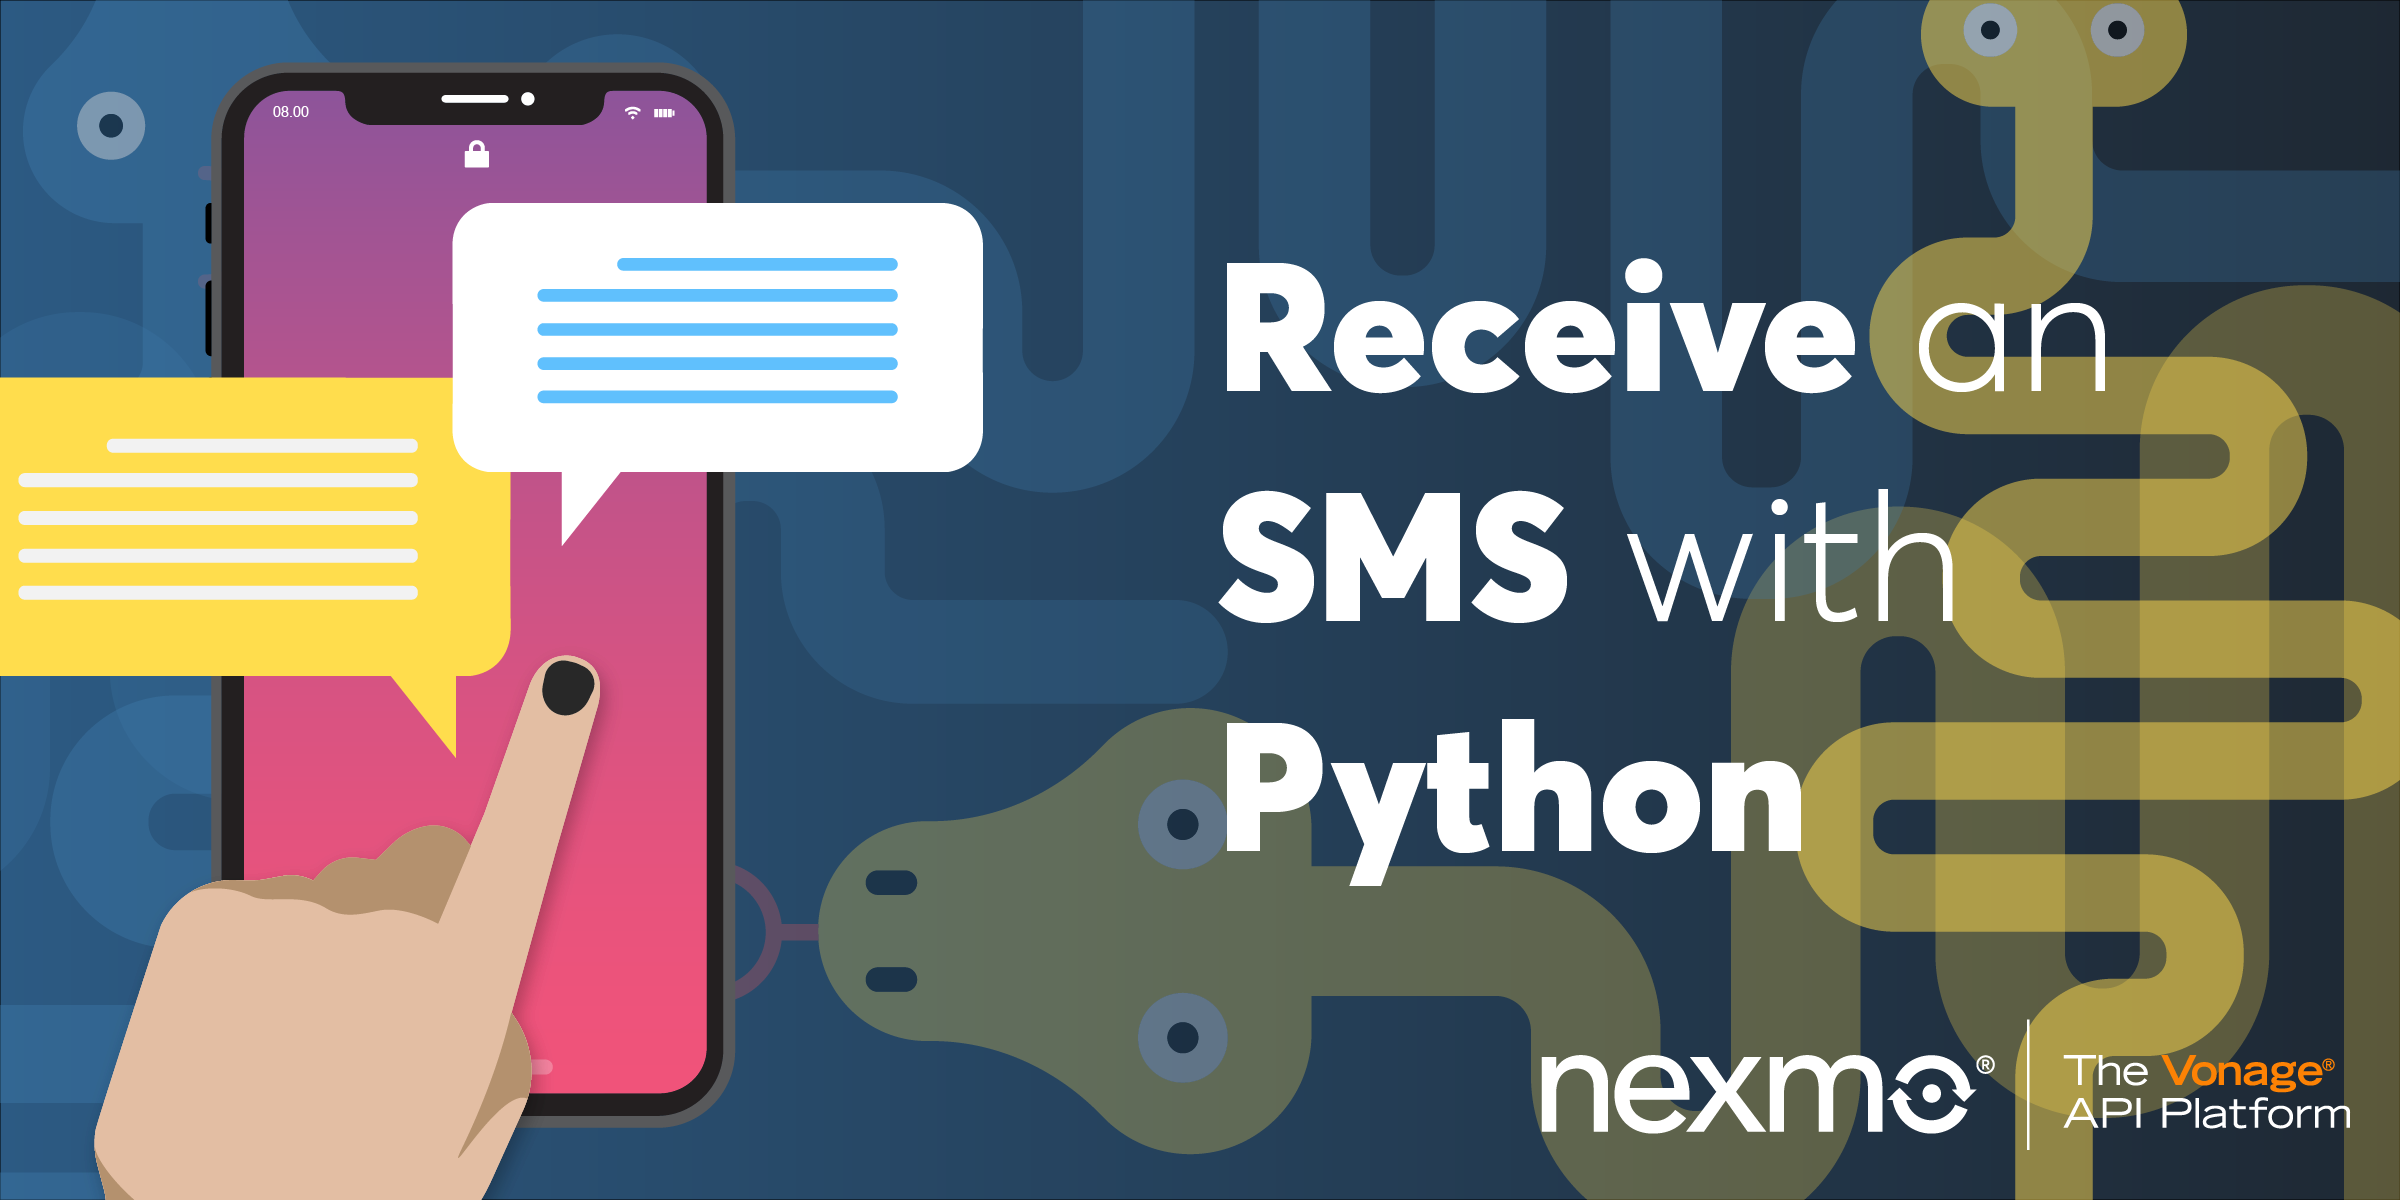 Receive an SMS with Python - Nexmo Developer Blog